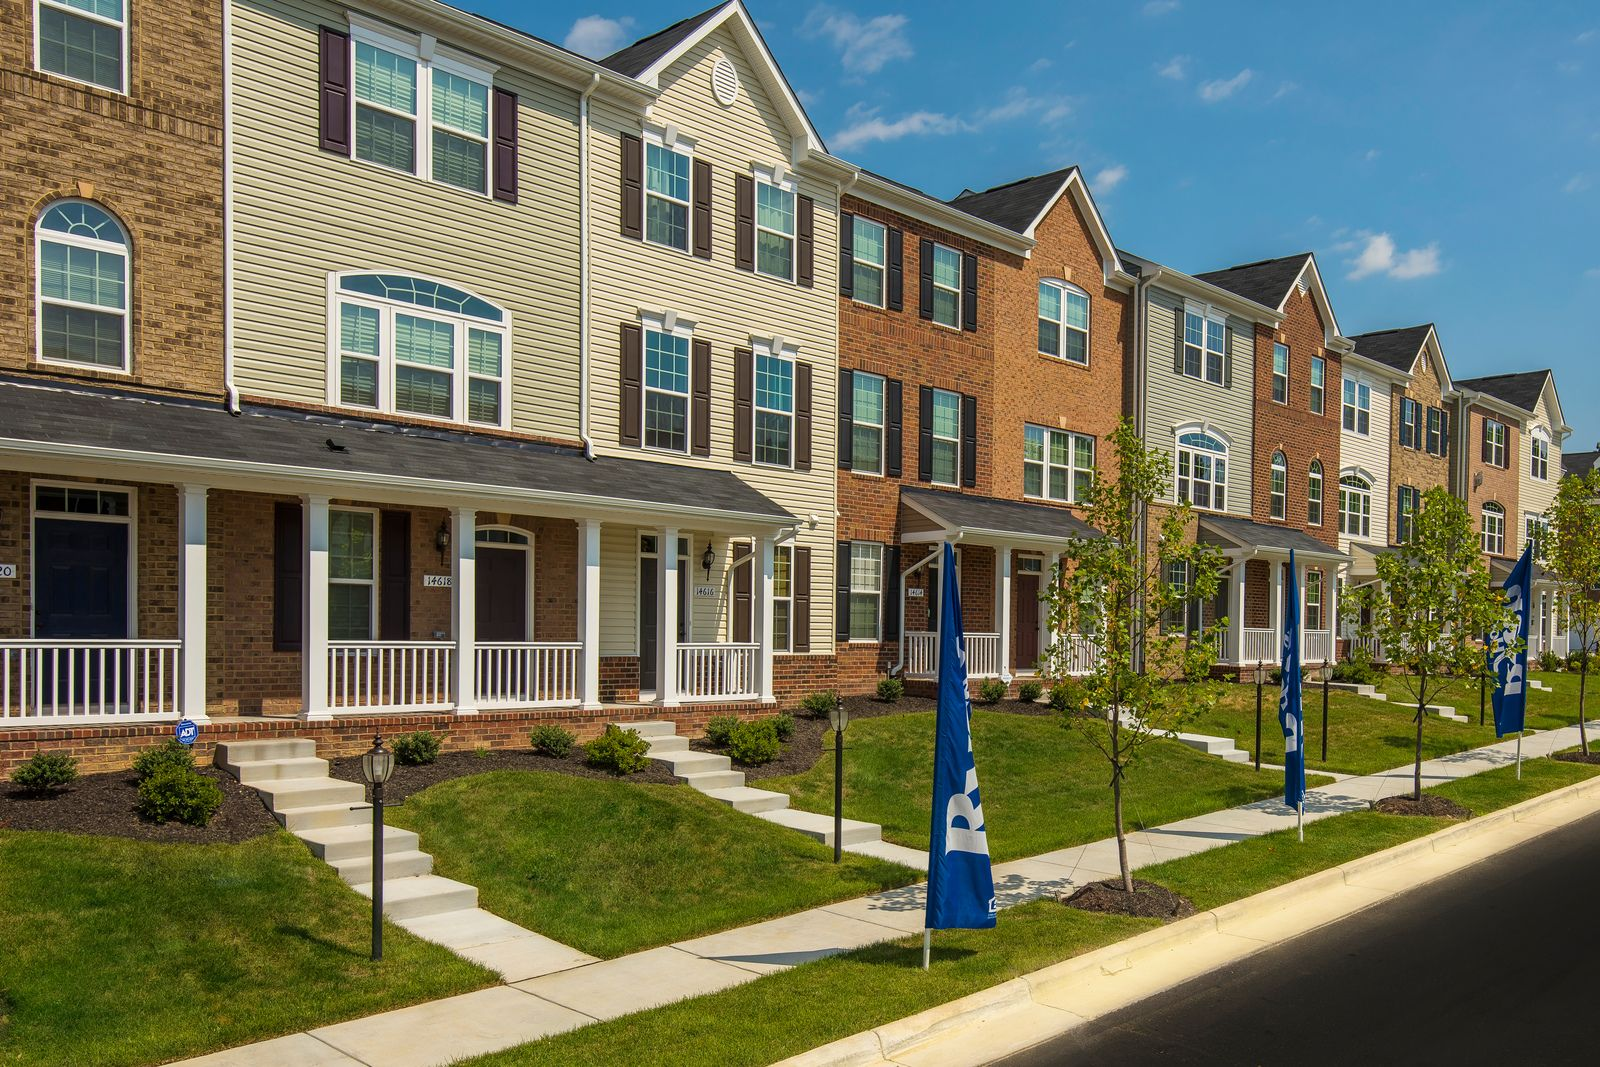 WELCOME TO EAGLE ROW - COMING SOON TO TRIANGLE, FALL 2021:The most affordable, new, 1 and 2-car garage townhomes in Prince William County! Enjoy a low maintenance home close to commuter routes, shops & dining- from the upper $300s!Join the VIP List today.